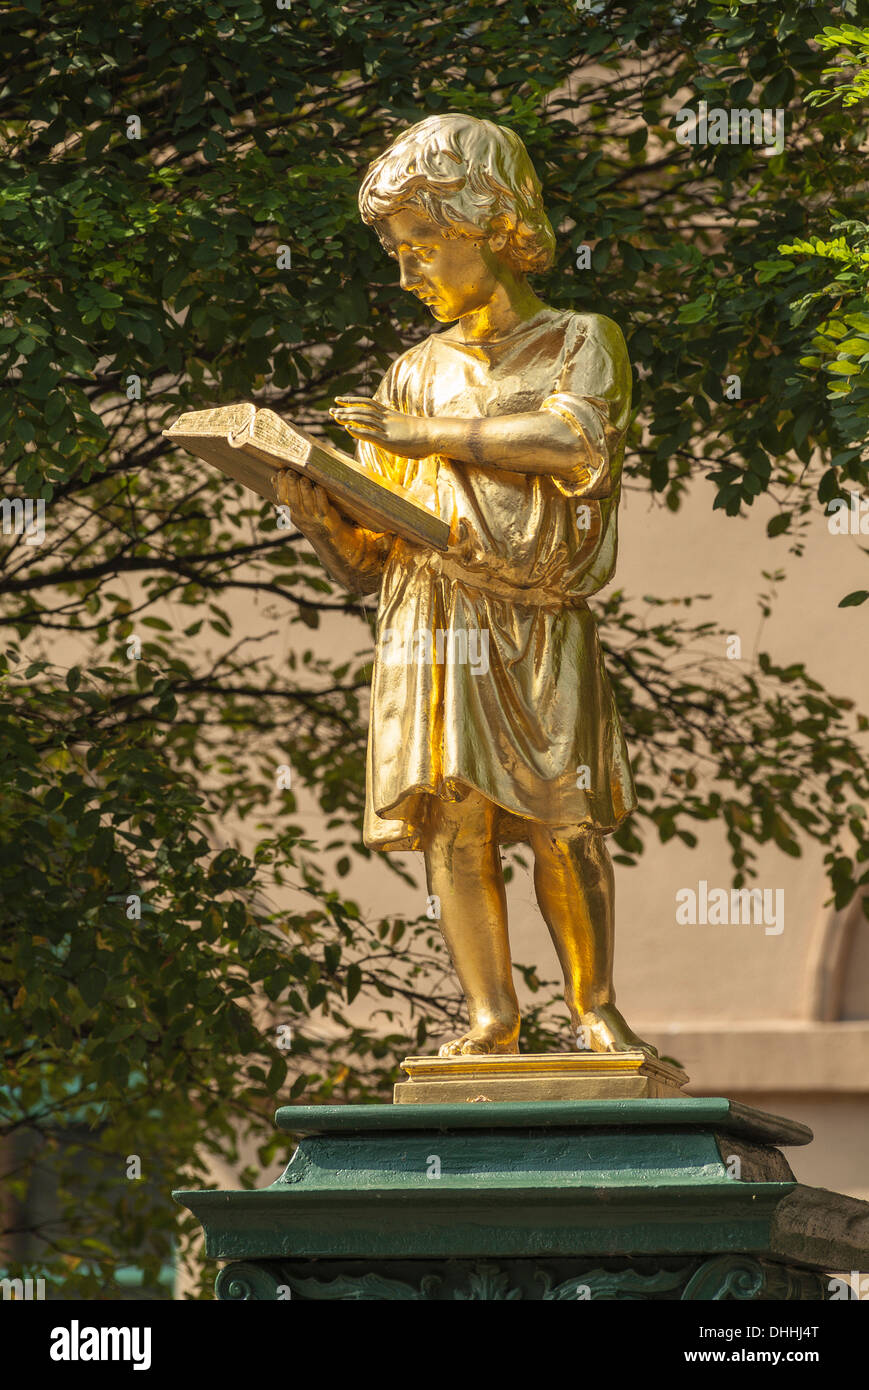 Gold plated fountain sculpture 'Boy Reading' in front of the former secondary school, now a music school, Weimar, Thuringia - Stock Image